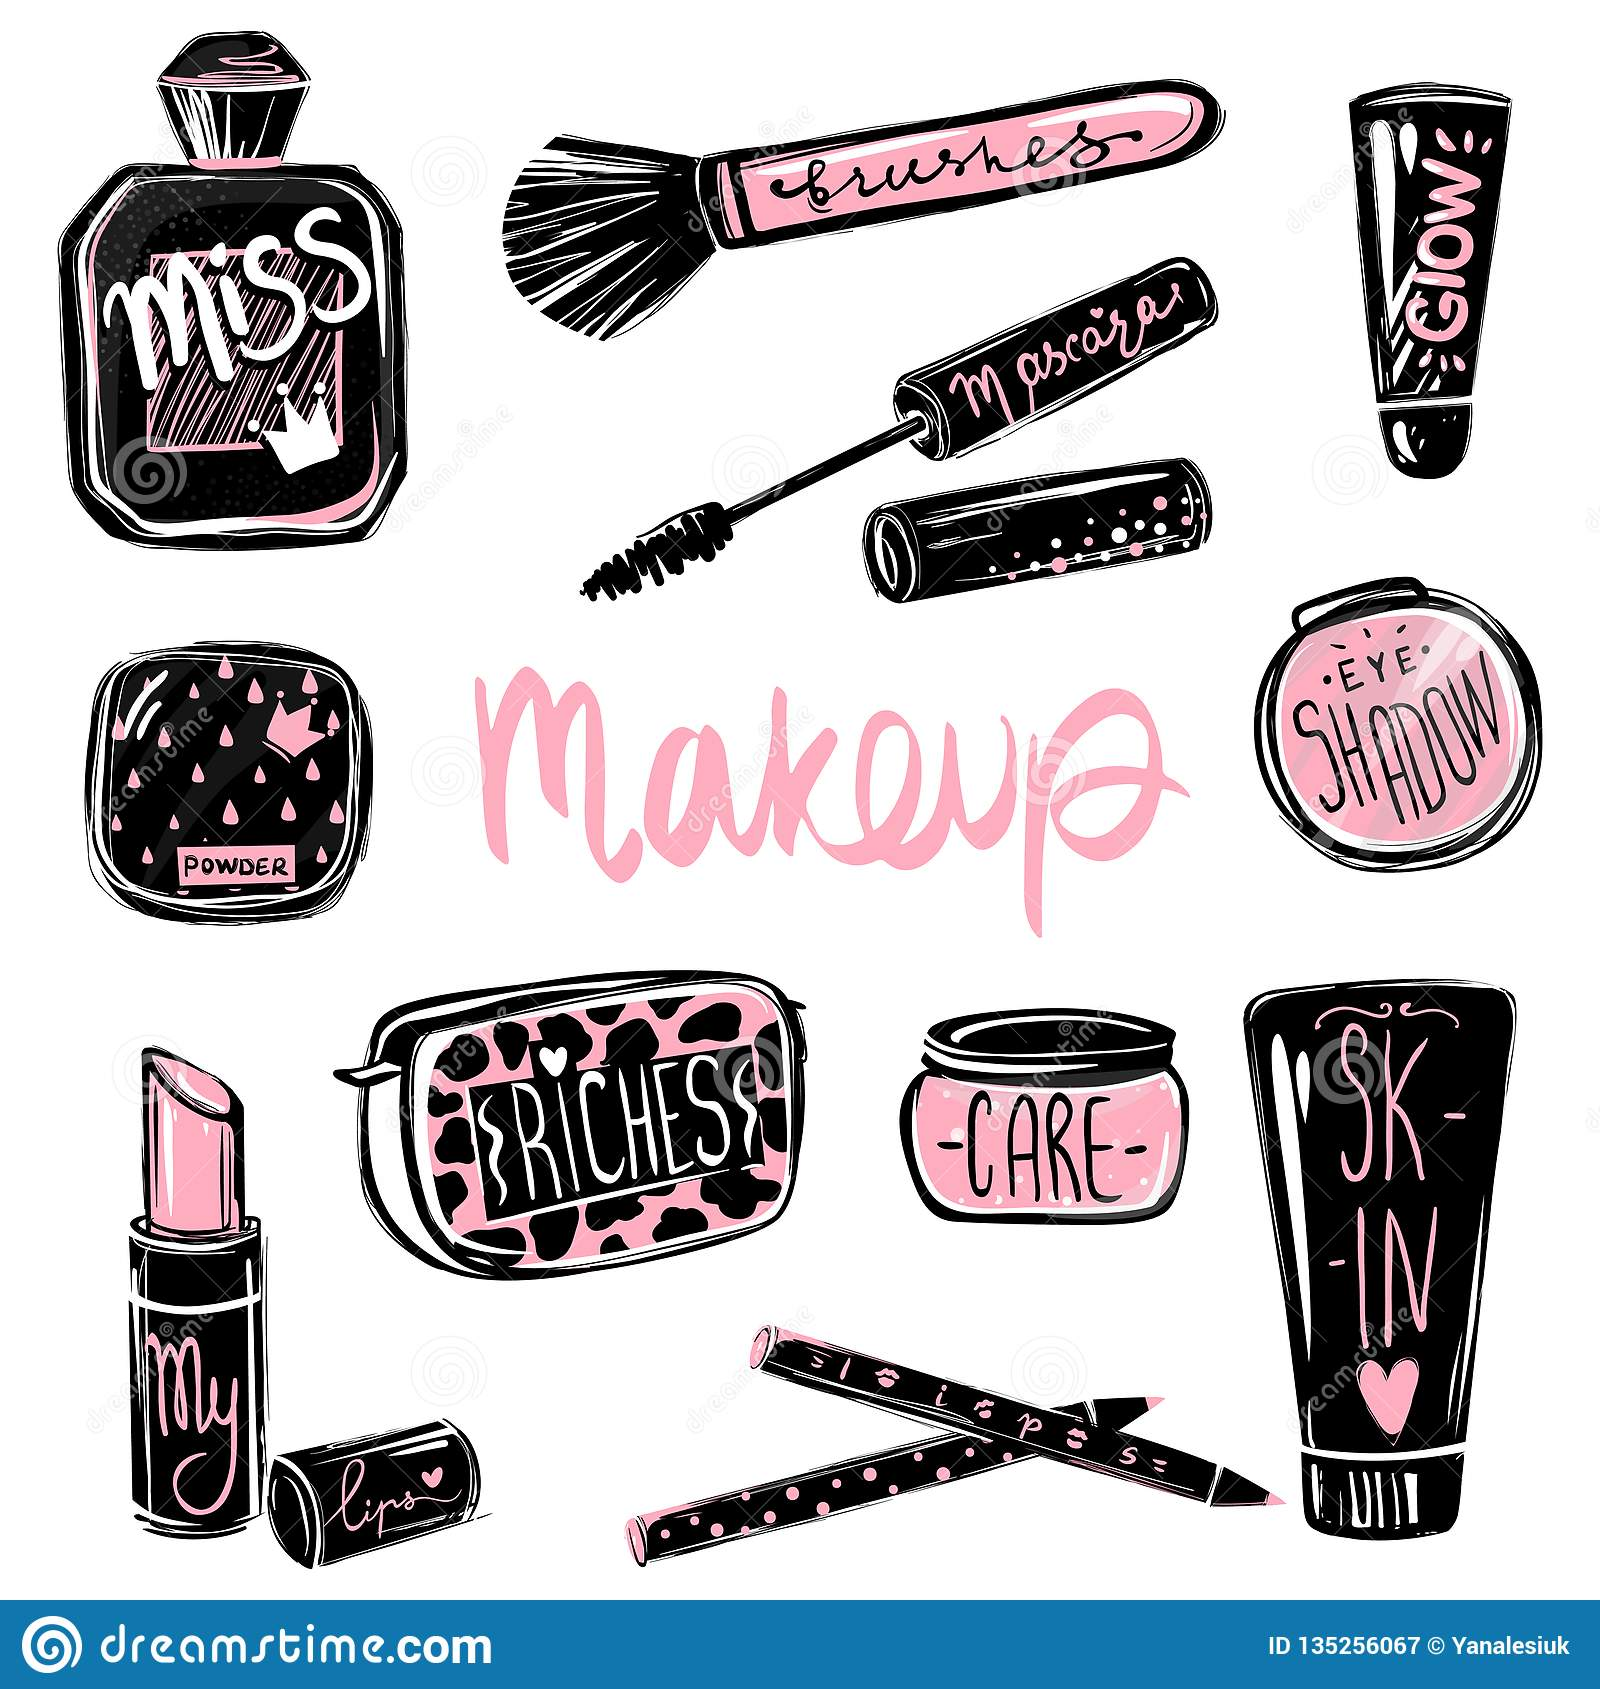 327afe2fe68 Makeup vector set. Mascara, lipstick, eye shadows, brush, foundation,  perfume. Cosmetics beauty elements. Stickers for girls. Beautiful fashion  illustration ...